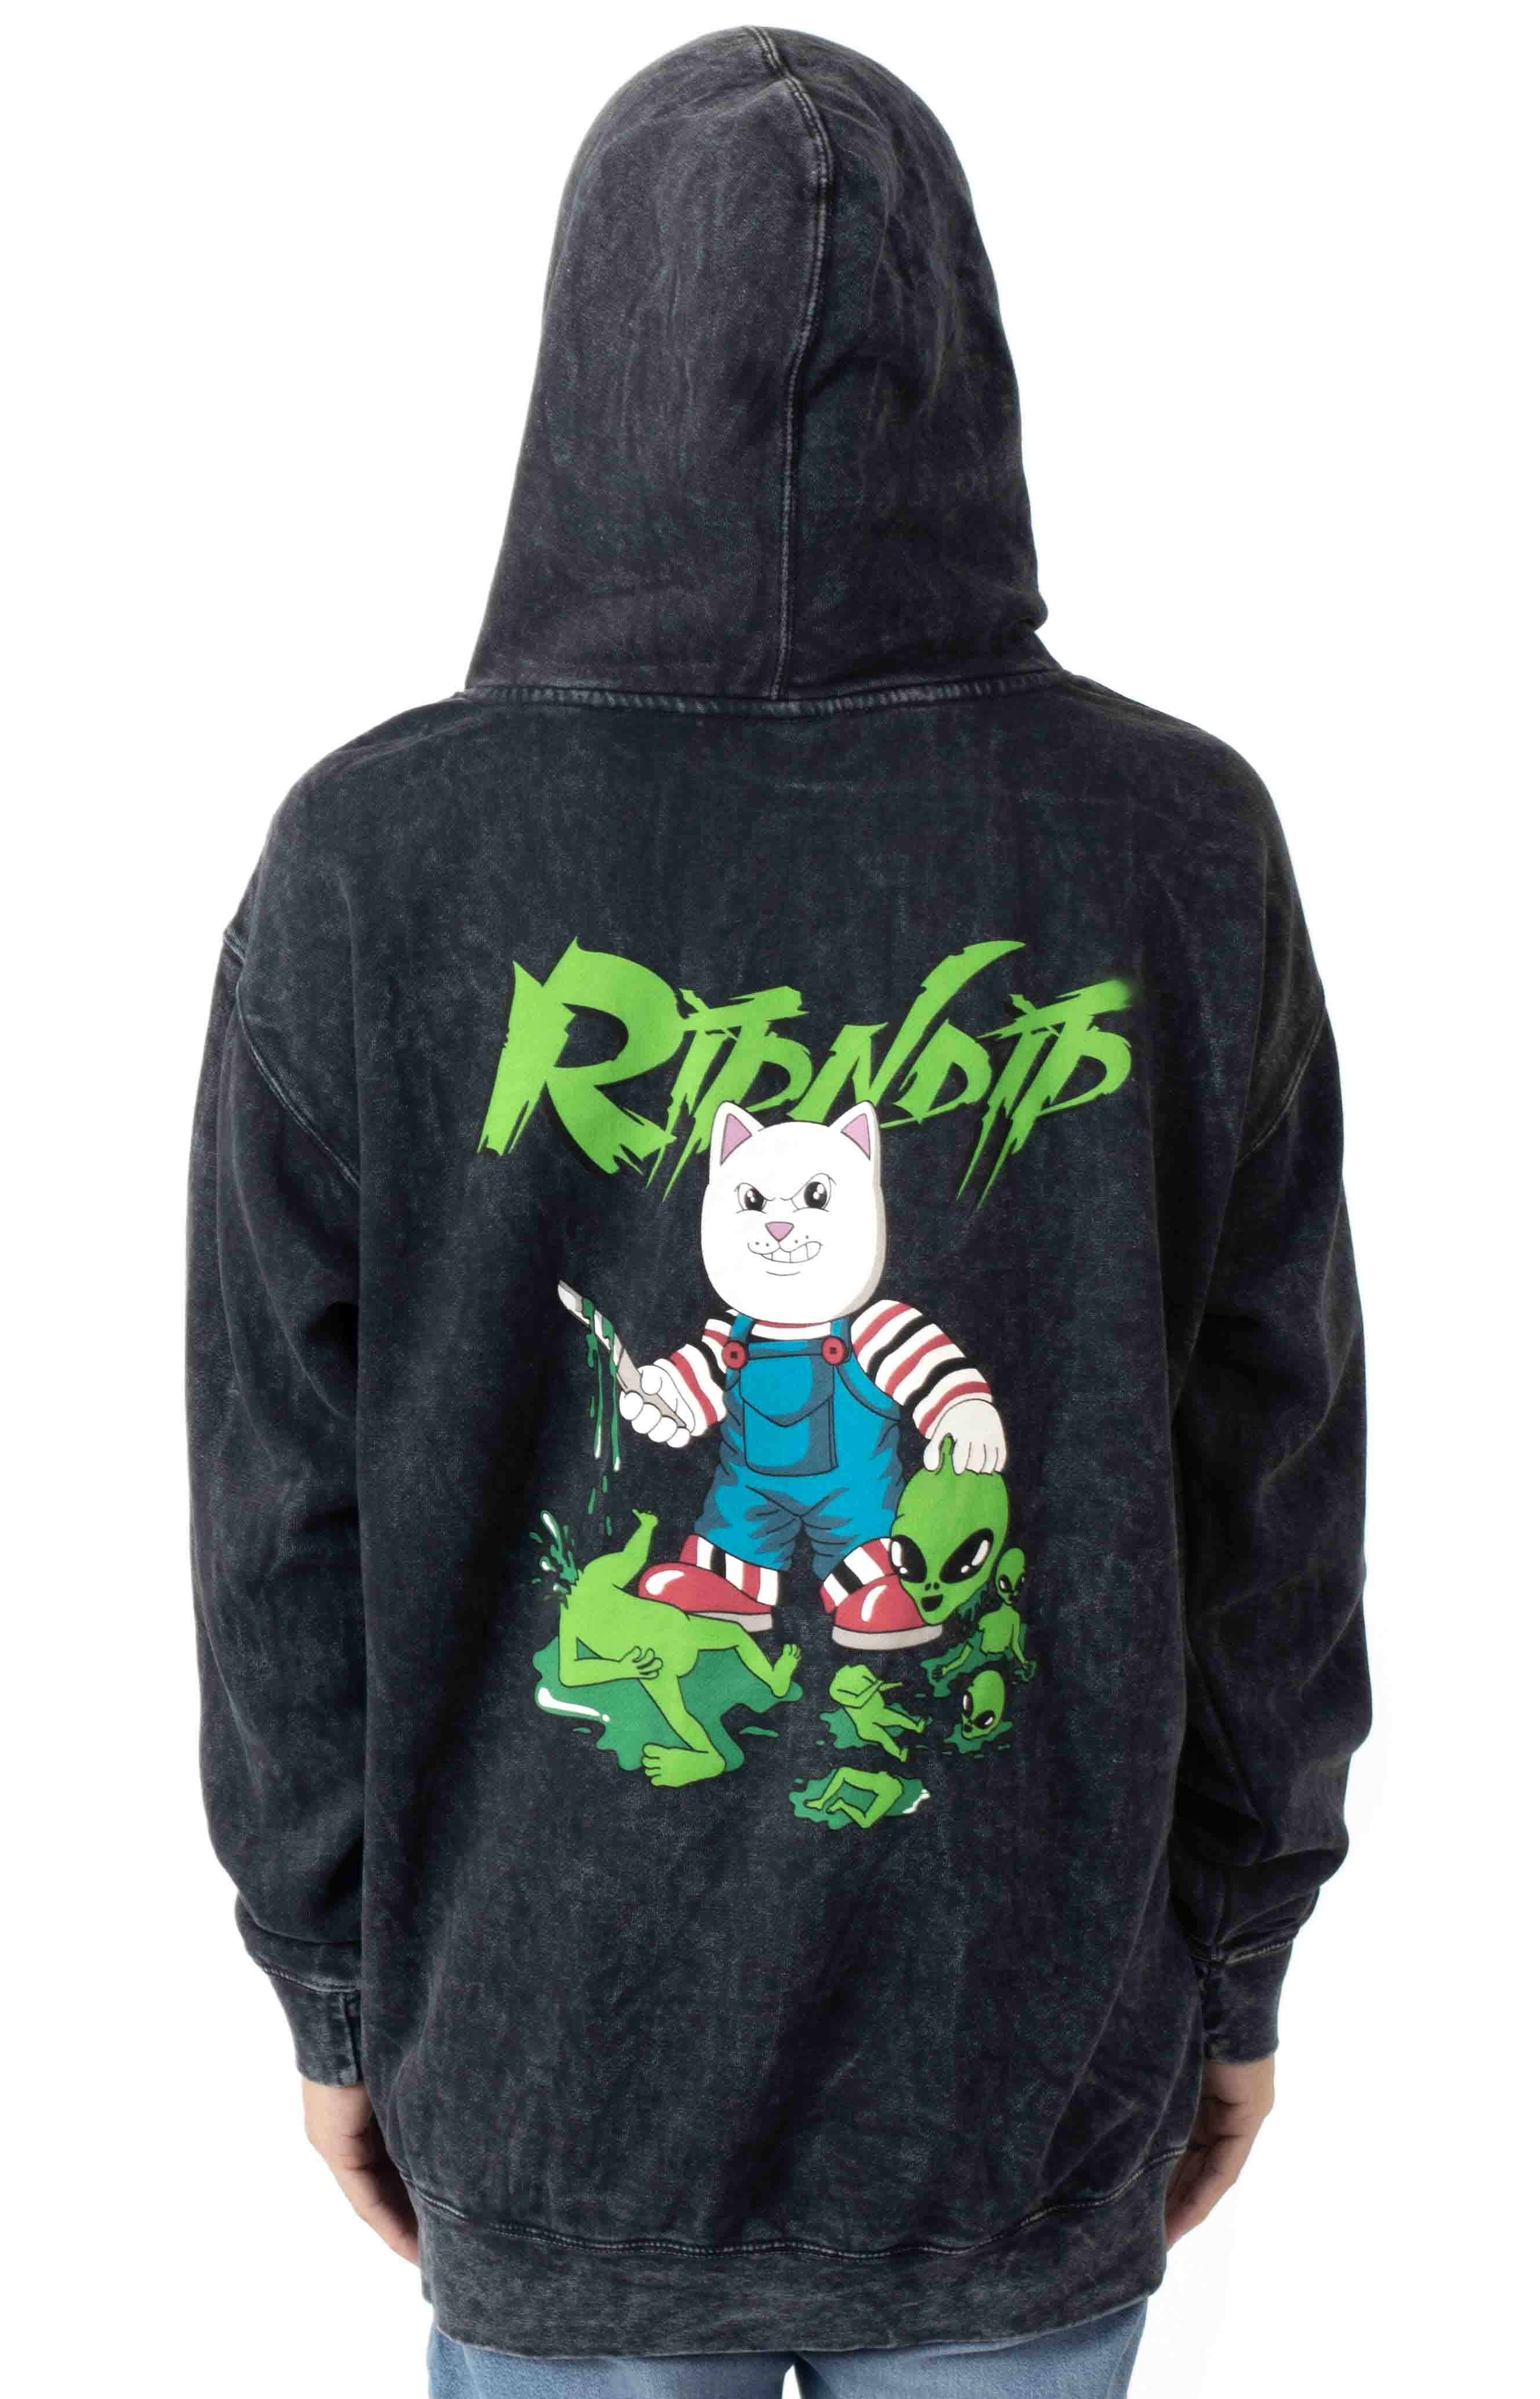 Childs Play Pullover Hoodie - Black Mineral Wash